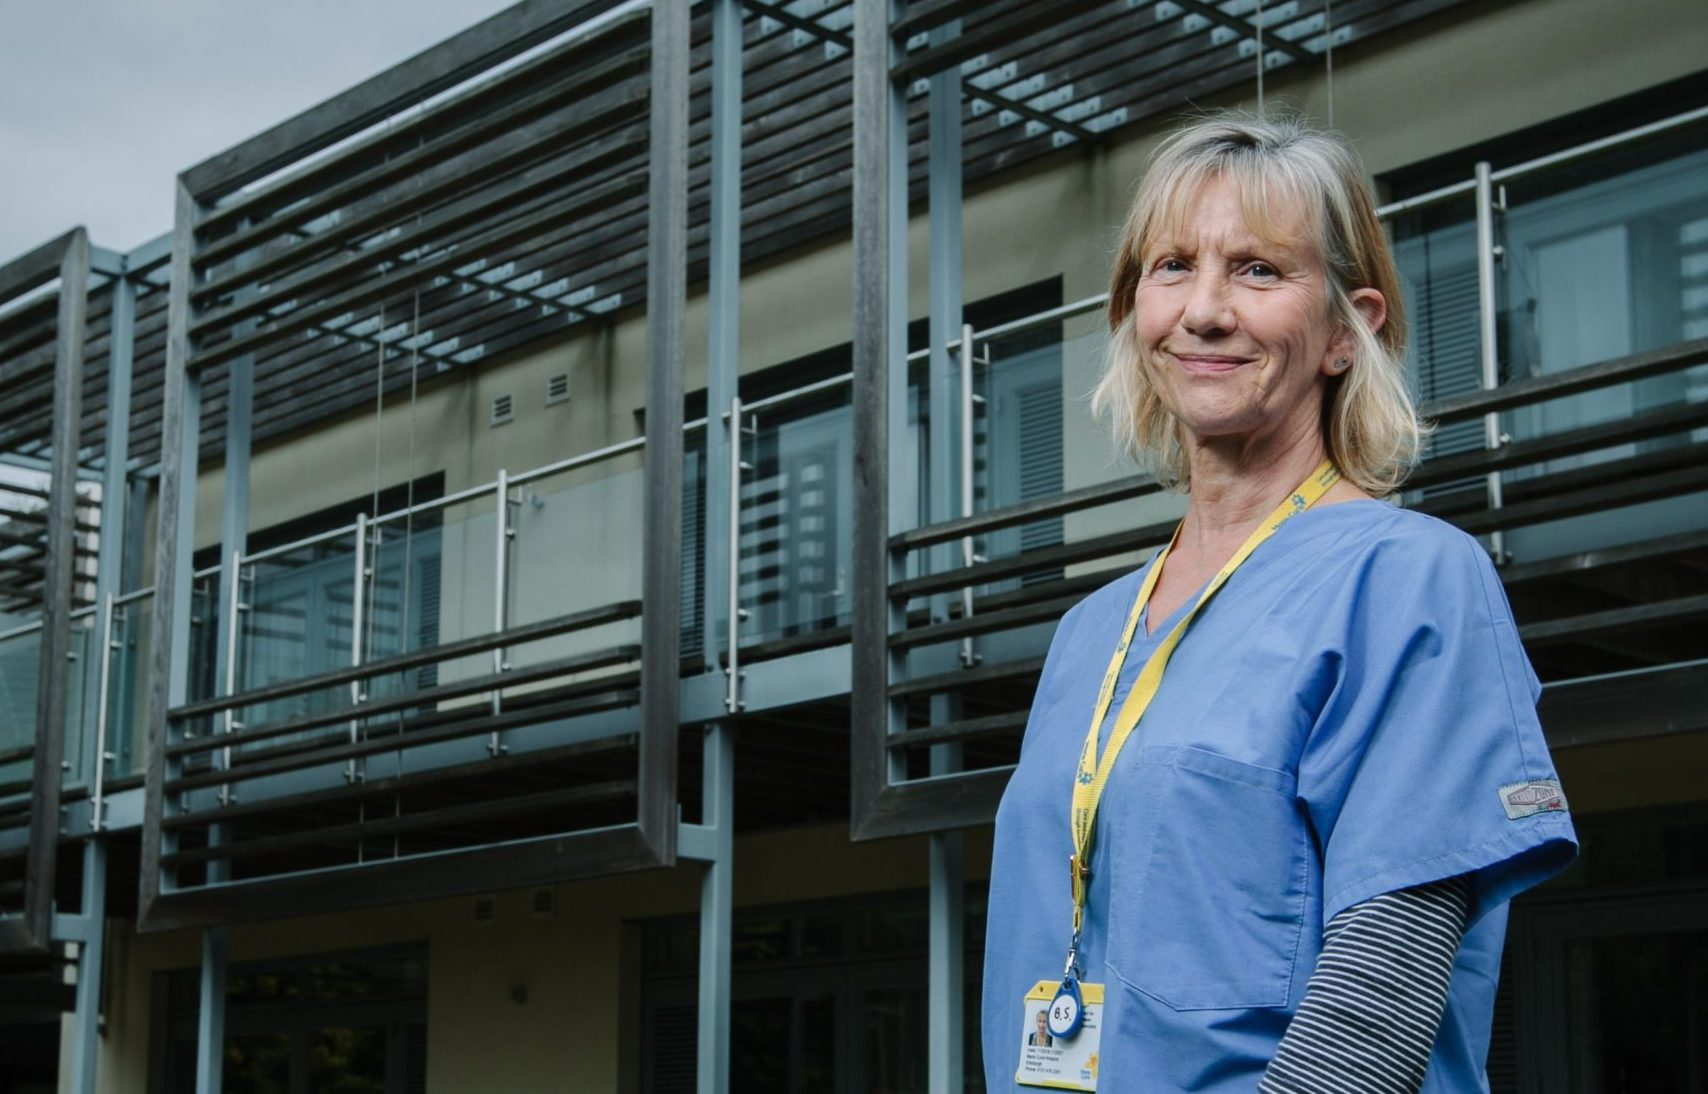 Barbara Stevenson at Marie Curie Hospice, Edinburgh, where she retires at the end of July after 40 years' service